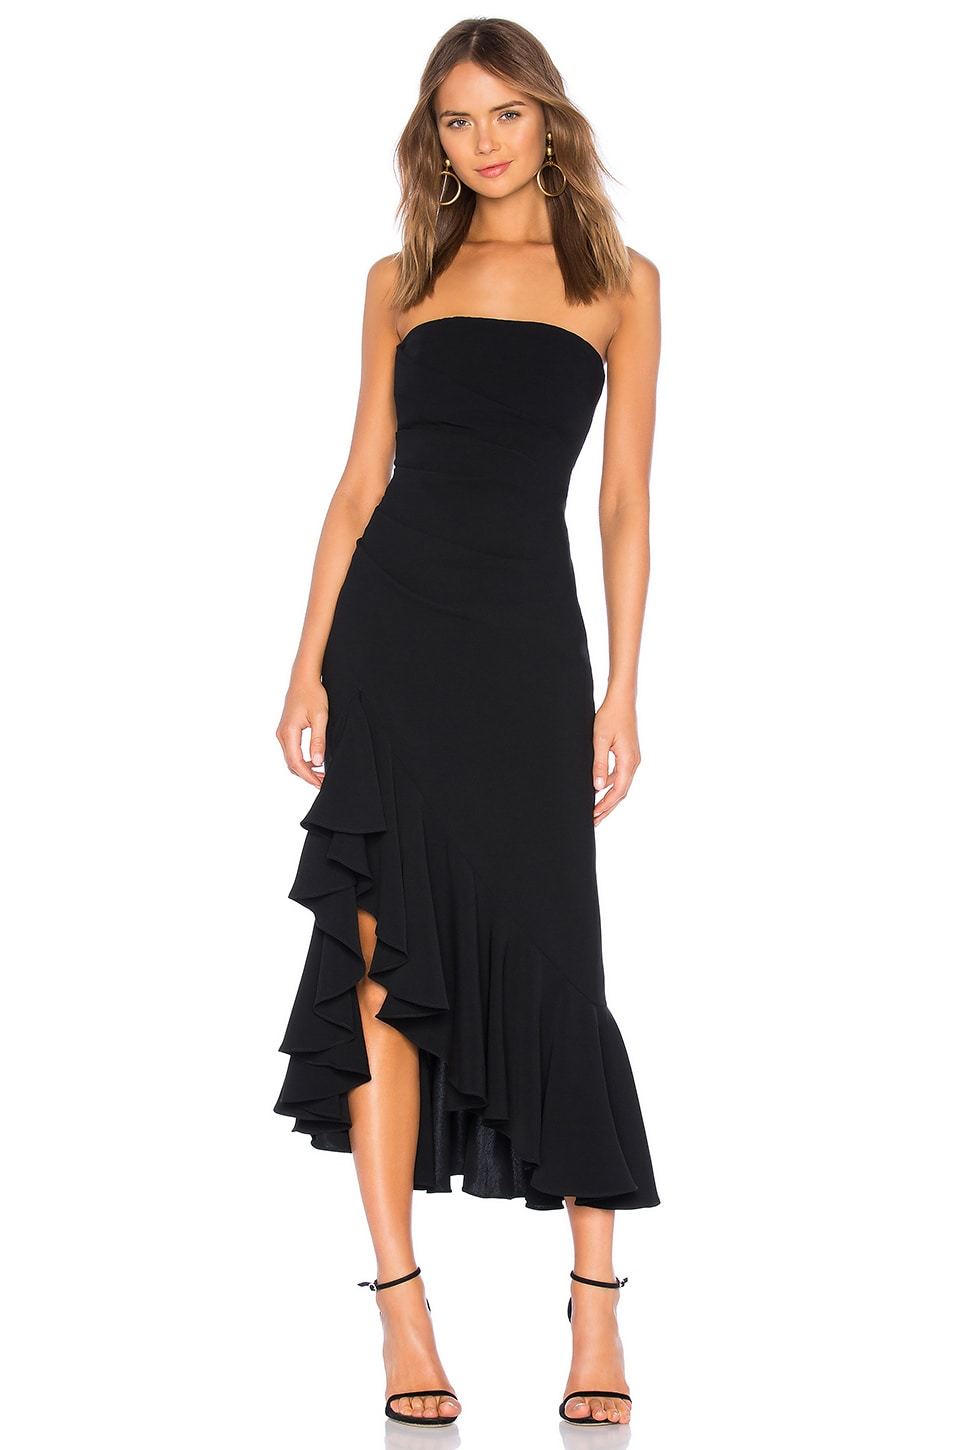 Cinq a Sept Gramercy Dress in Black